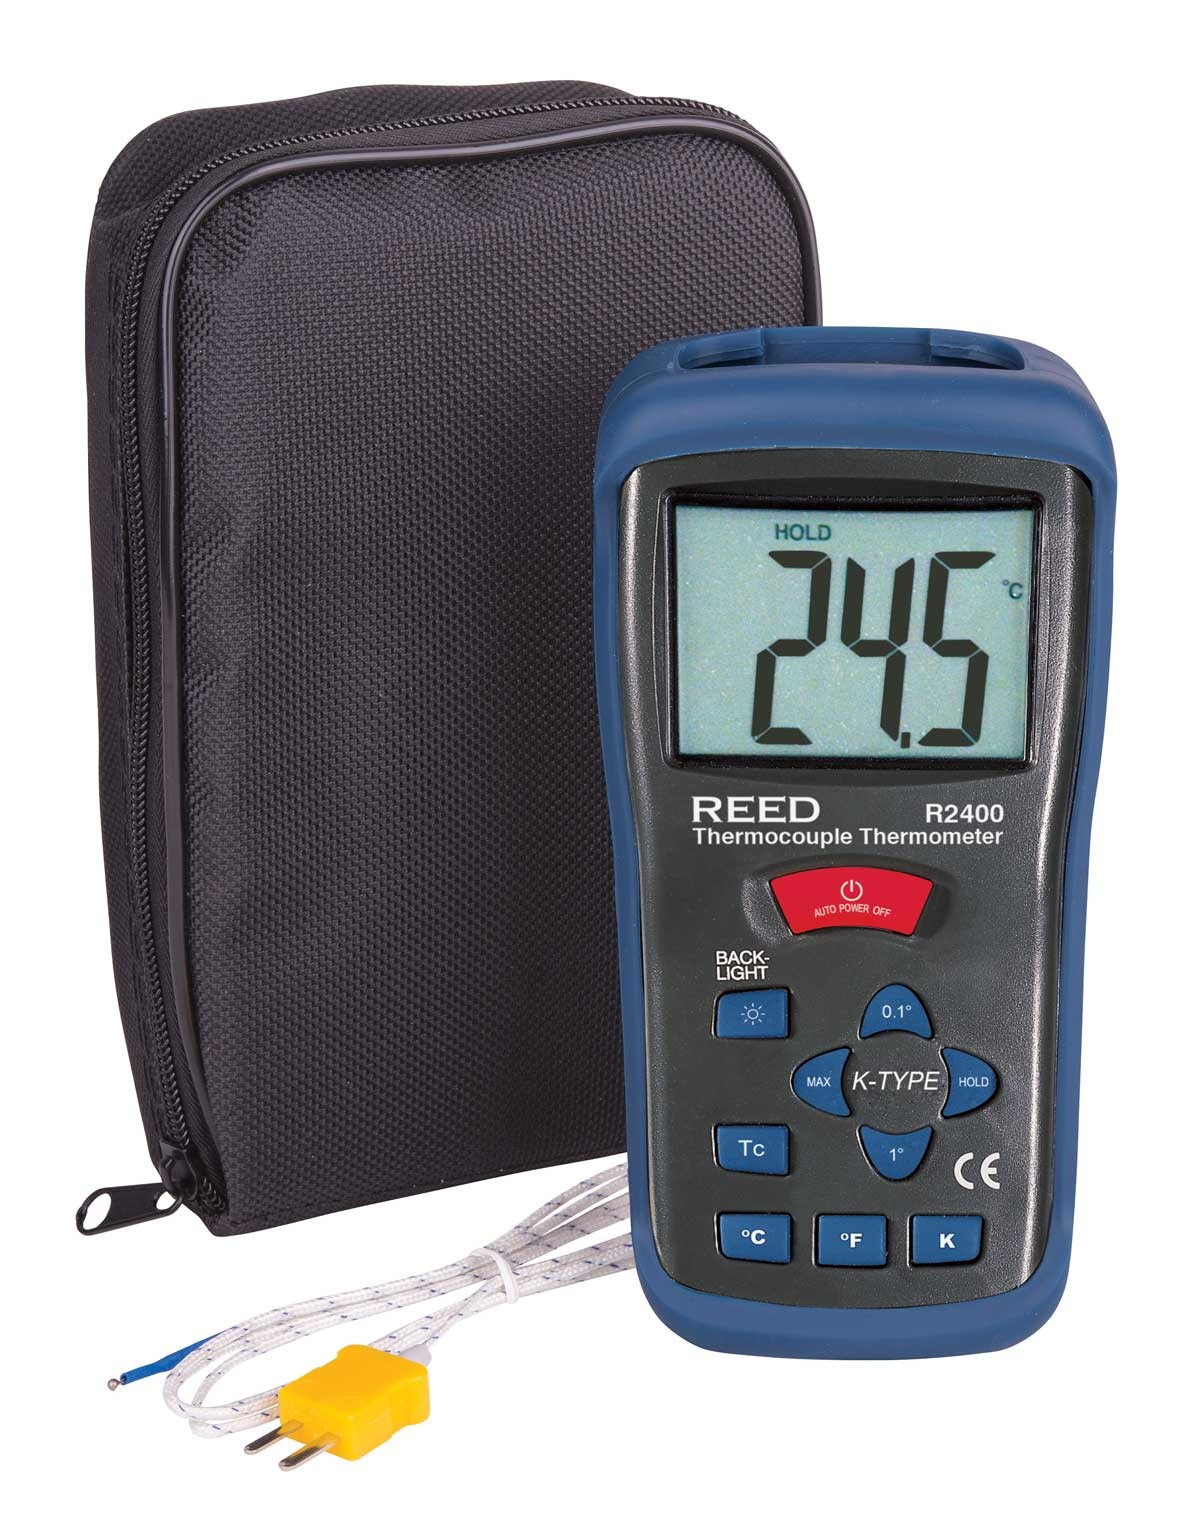 REED R2400 Type K Thermocouple Thermometer, -58 to 2000°F (-50 to 1300°C) and 223 to 2000 Kelvin-Included